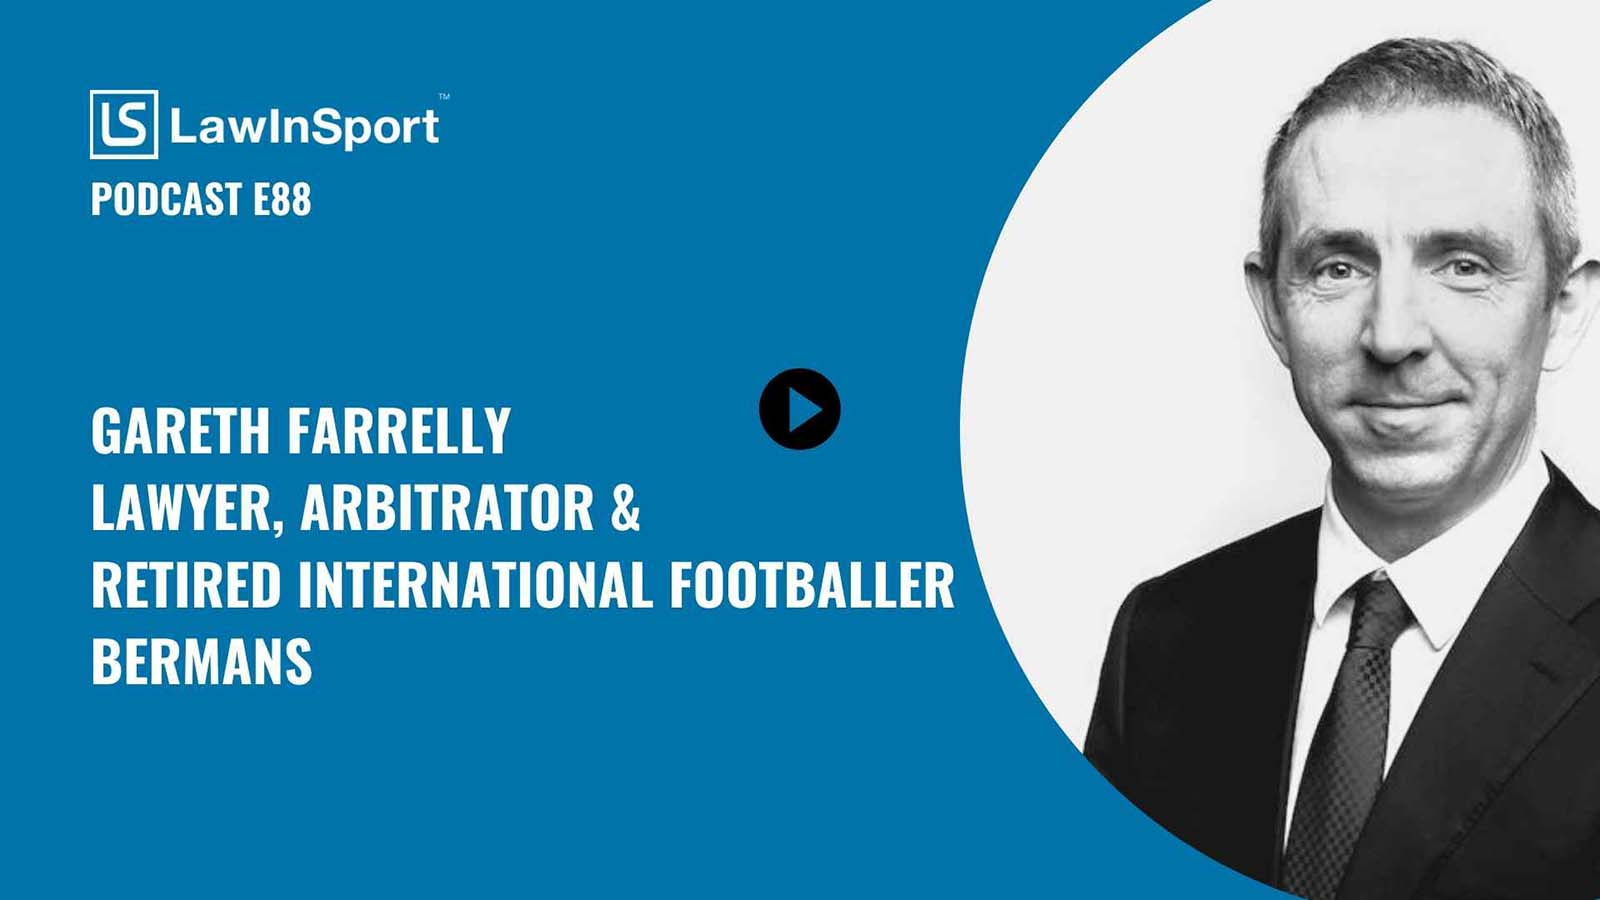 Gareth Farrelly - Lawyer, Arbitrator and Former Pro Football Player Episode 88